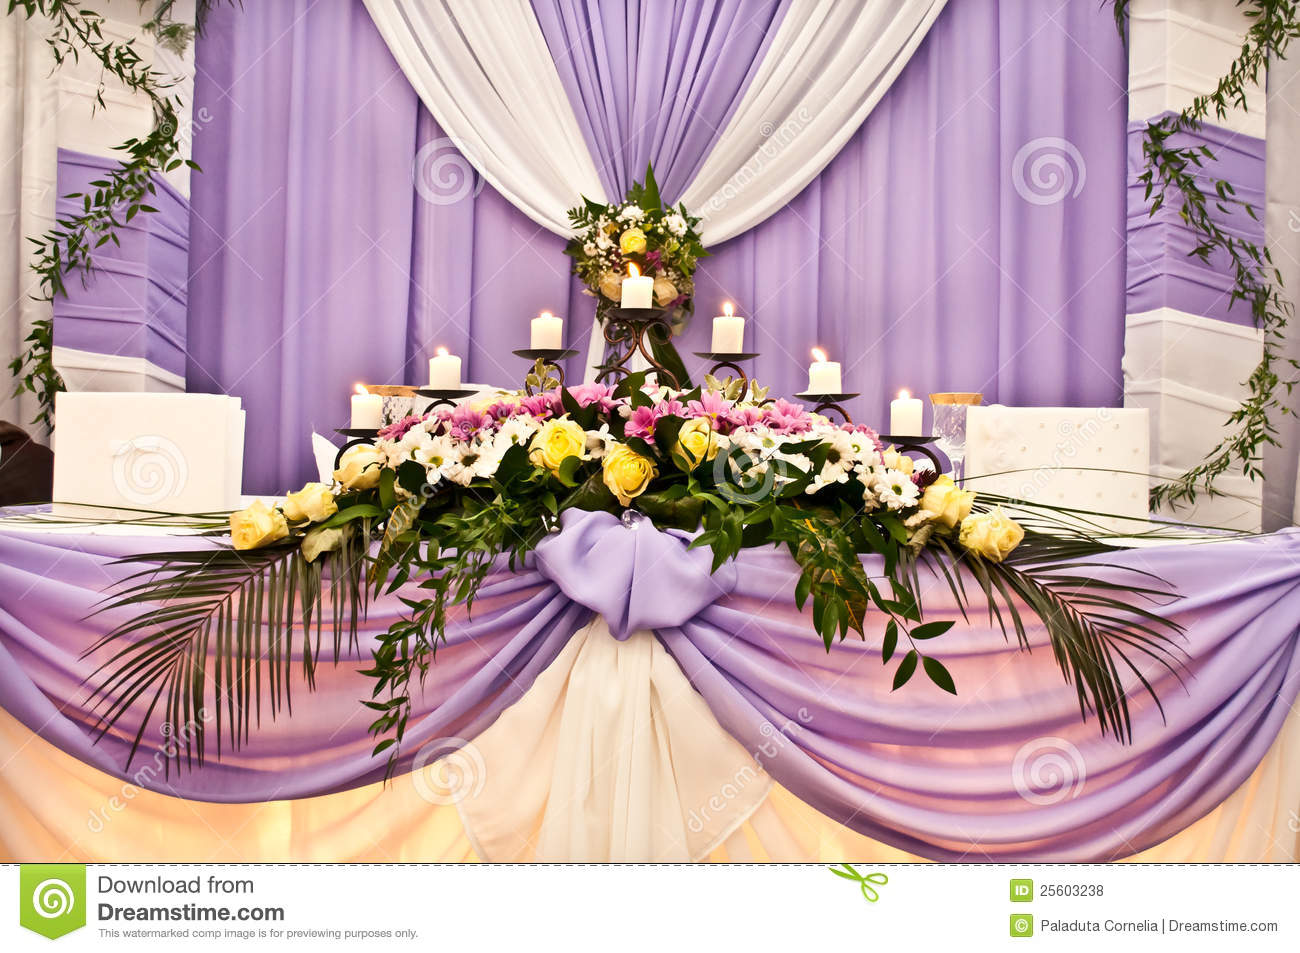 table de mariage pour des nouveaux mari s photos libres de droits image 25603238. Black Bedroom Furniture Sets. Home Design Ideas